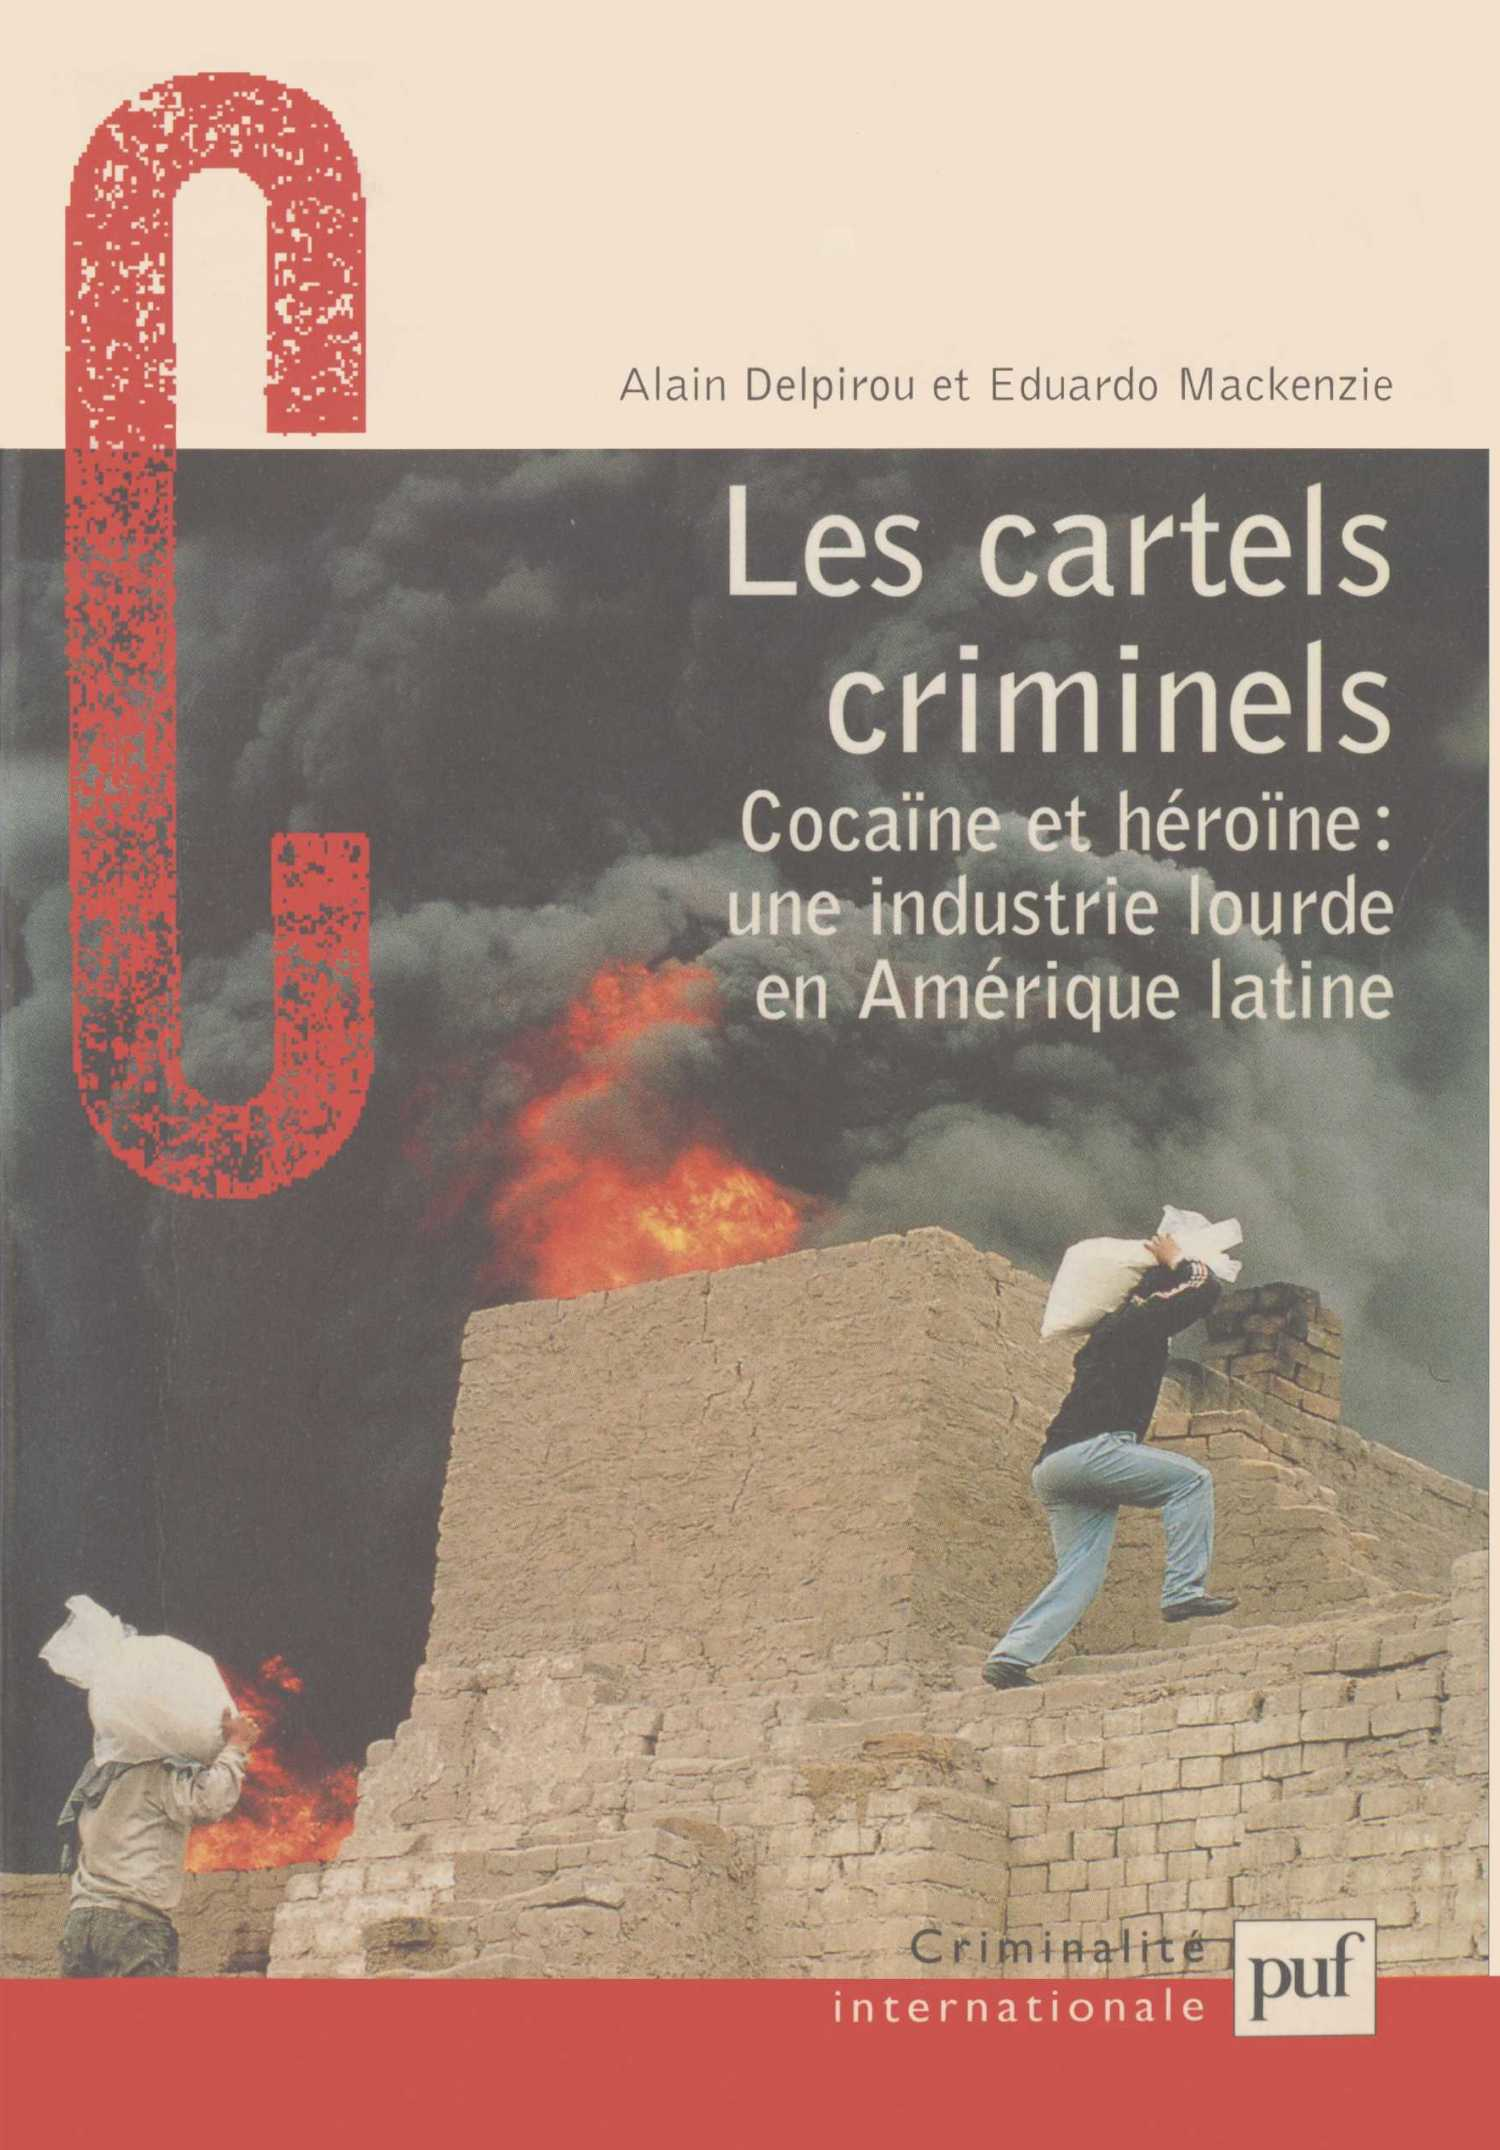 Les cartels criminels De Alain Delpirou et Eduardo Mackenzie - Presses Universitaires de France